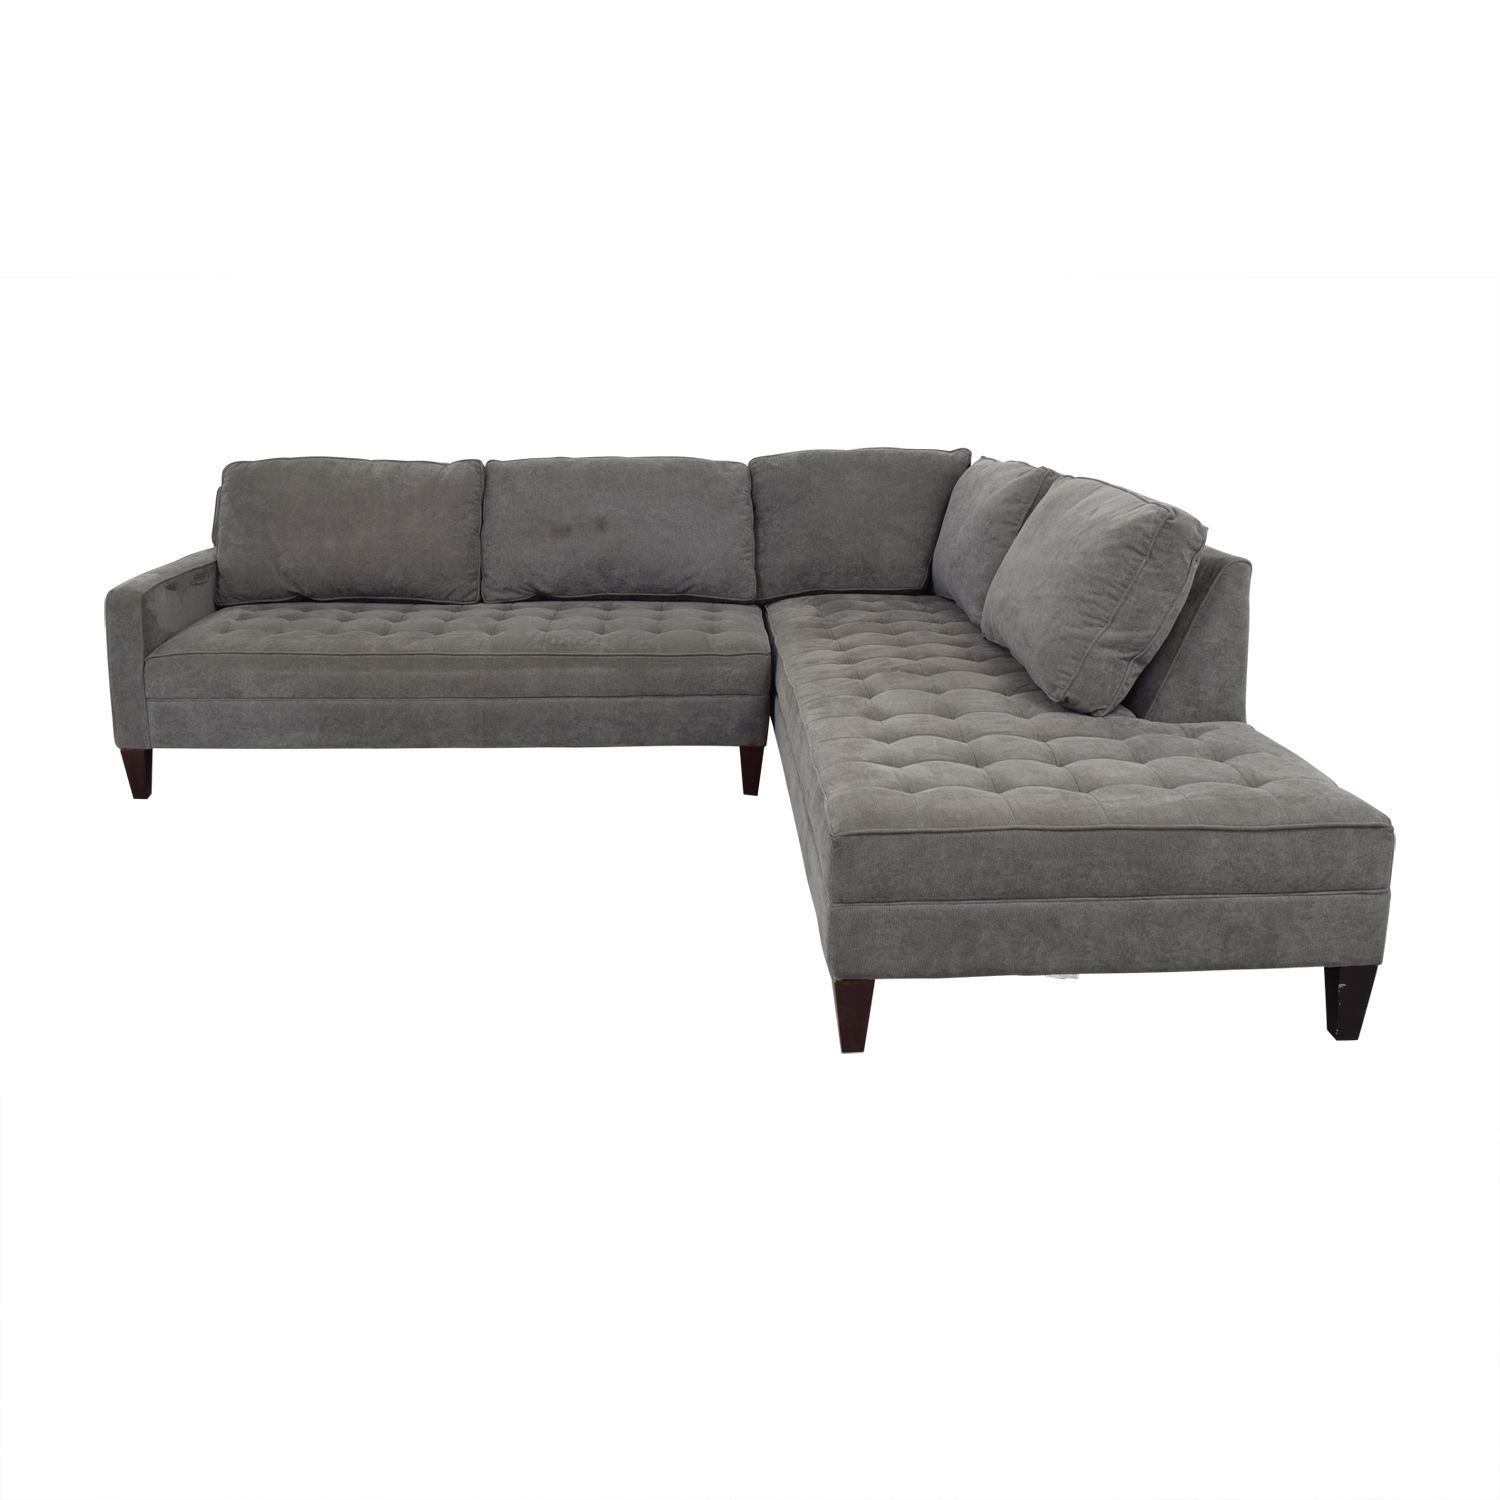 Z Gallerie Z Gallerie Vapor Grey Tufted L-Shaped Sectional price